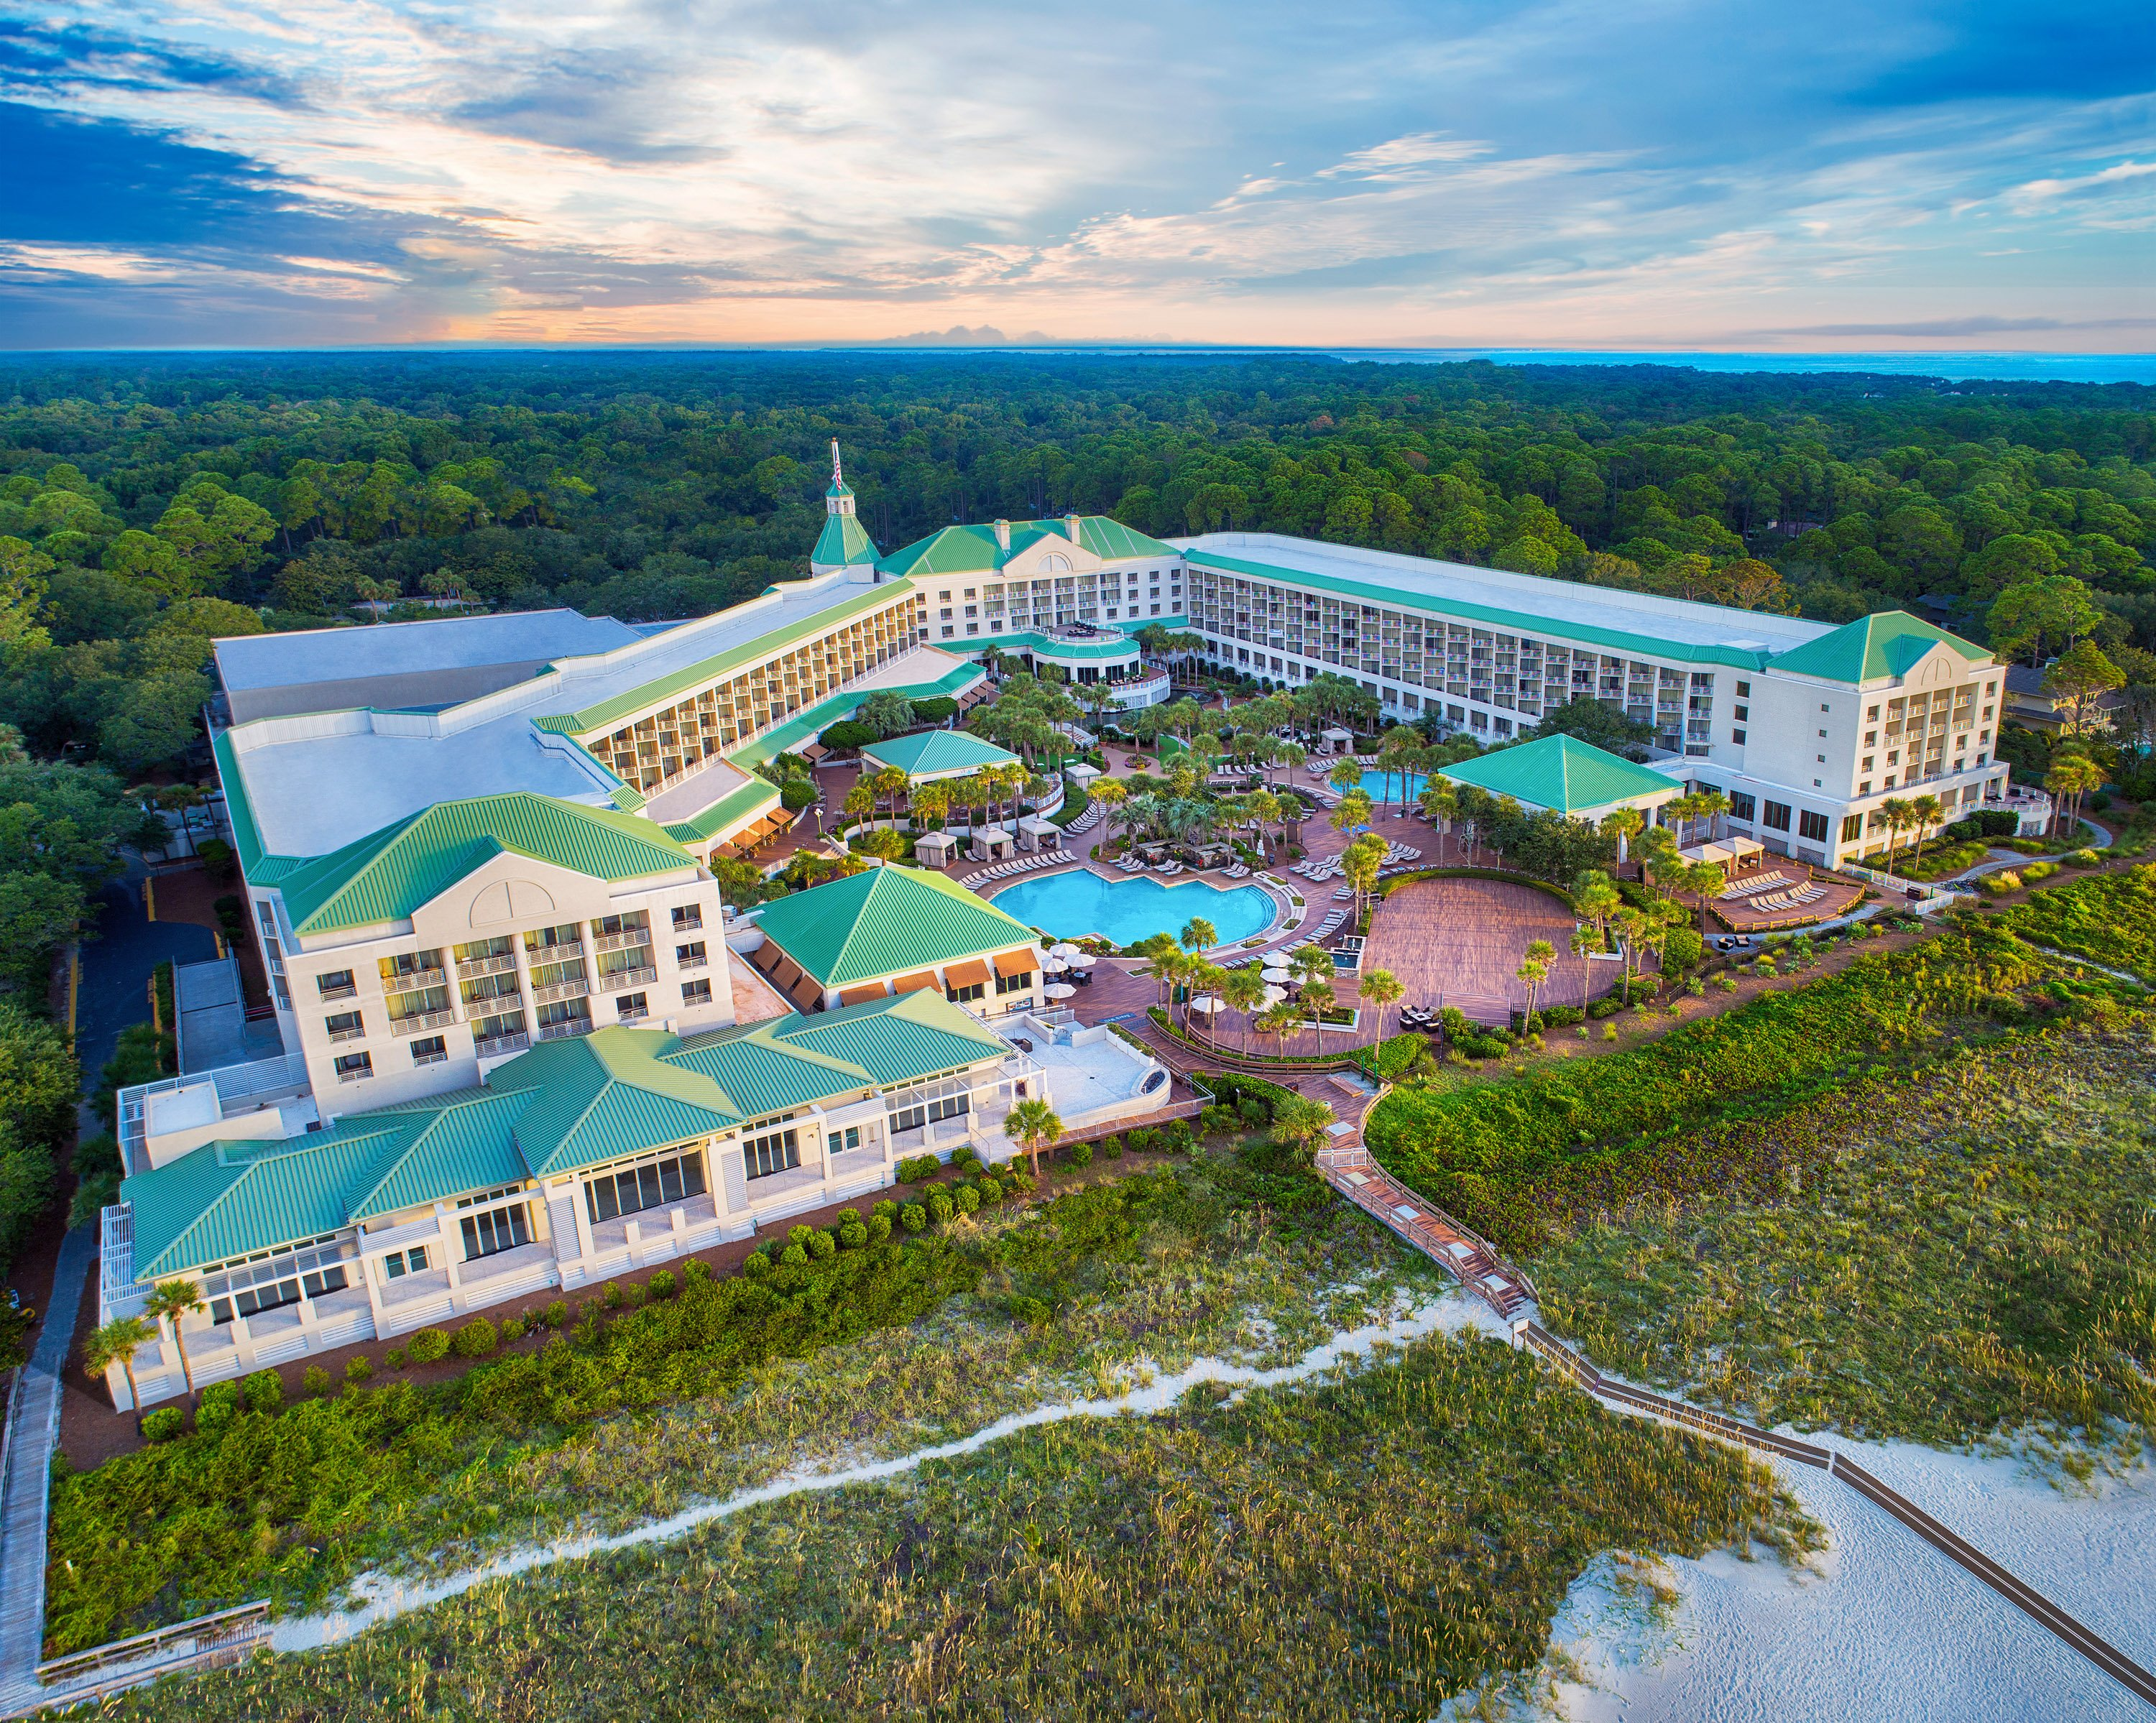 Bird's eye view of the Westin Hilton Head Island Resort & Spa